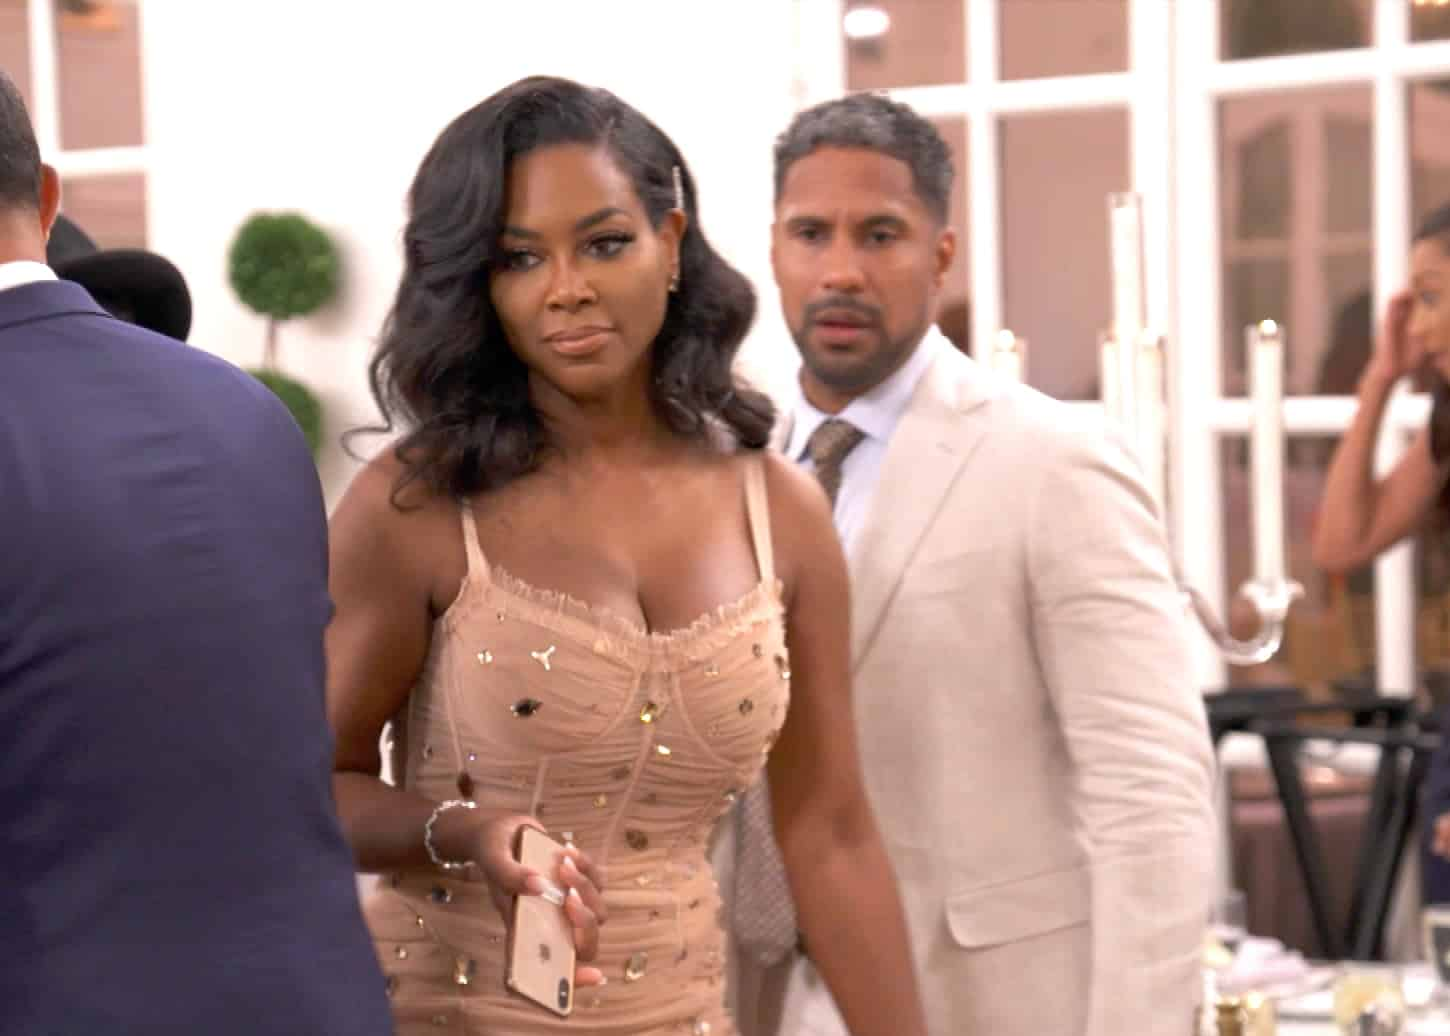 RHOA Recap: Marc and Kenya End Their Marriage After Marc Explodes on RHOA Producers at His Charity Event